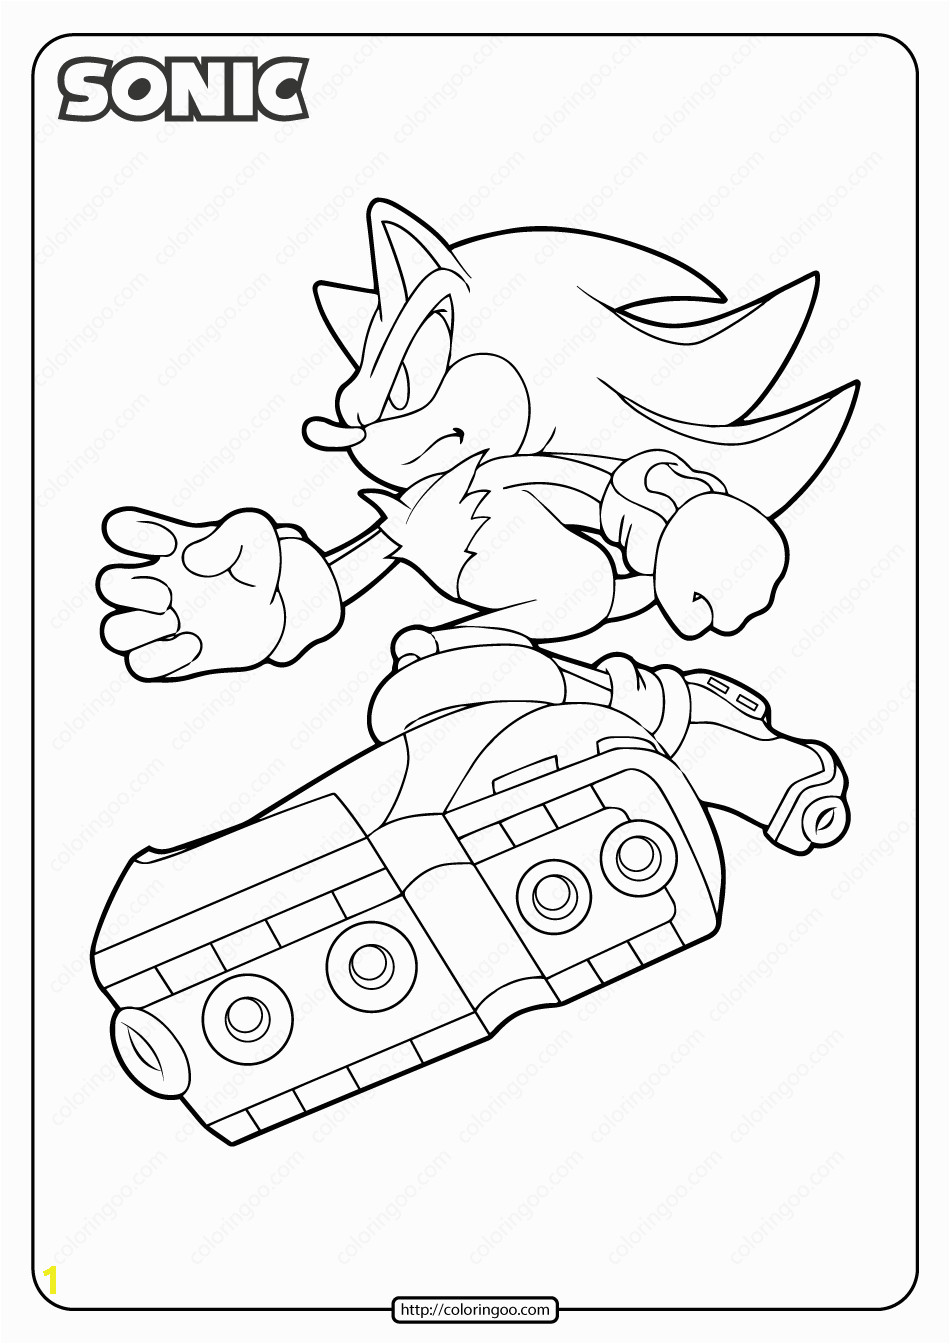 printable sonic the hedgehog pdf coloring pages